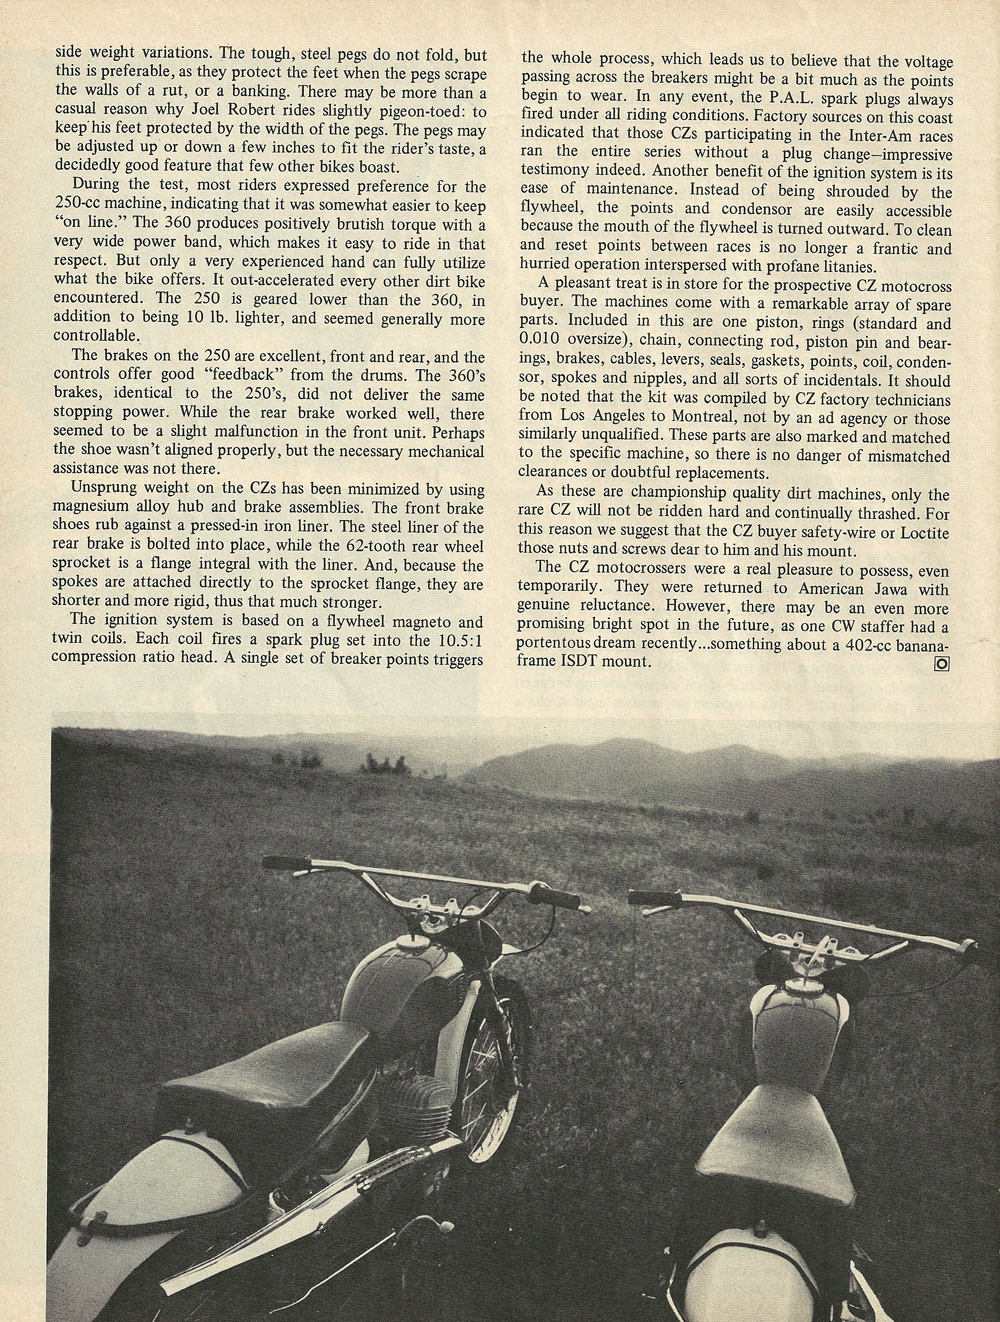 1969 CZ 360 and 250 Motocrossers road test 3.jpg